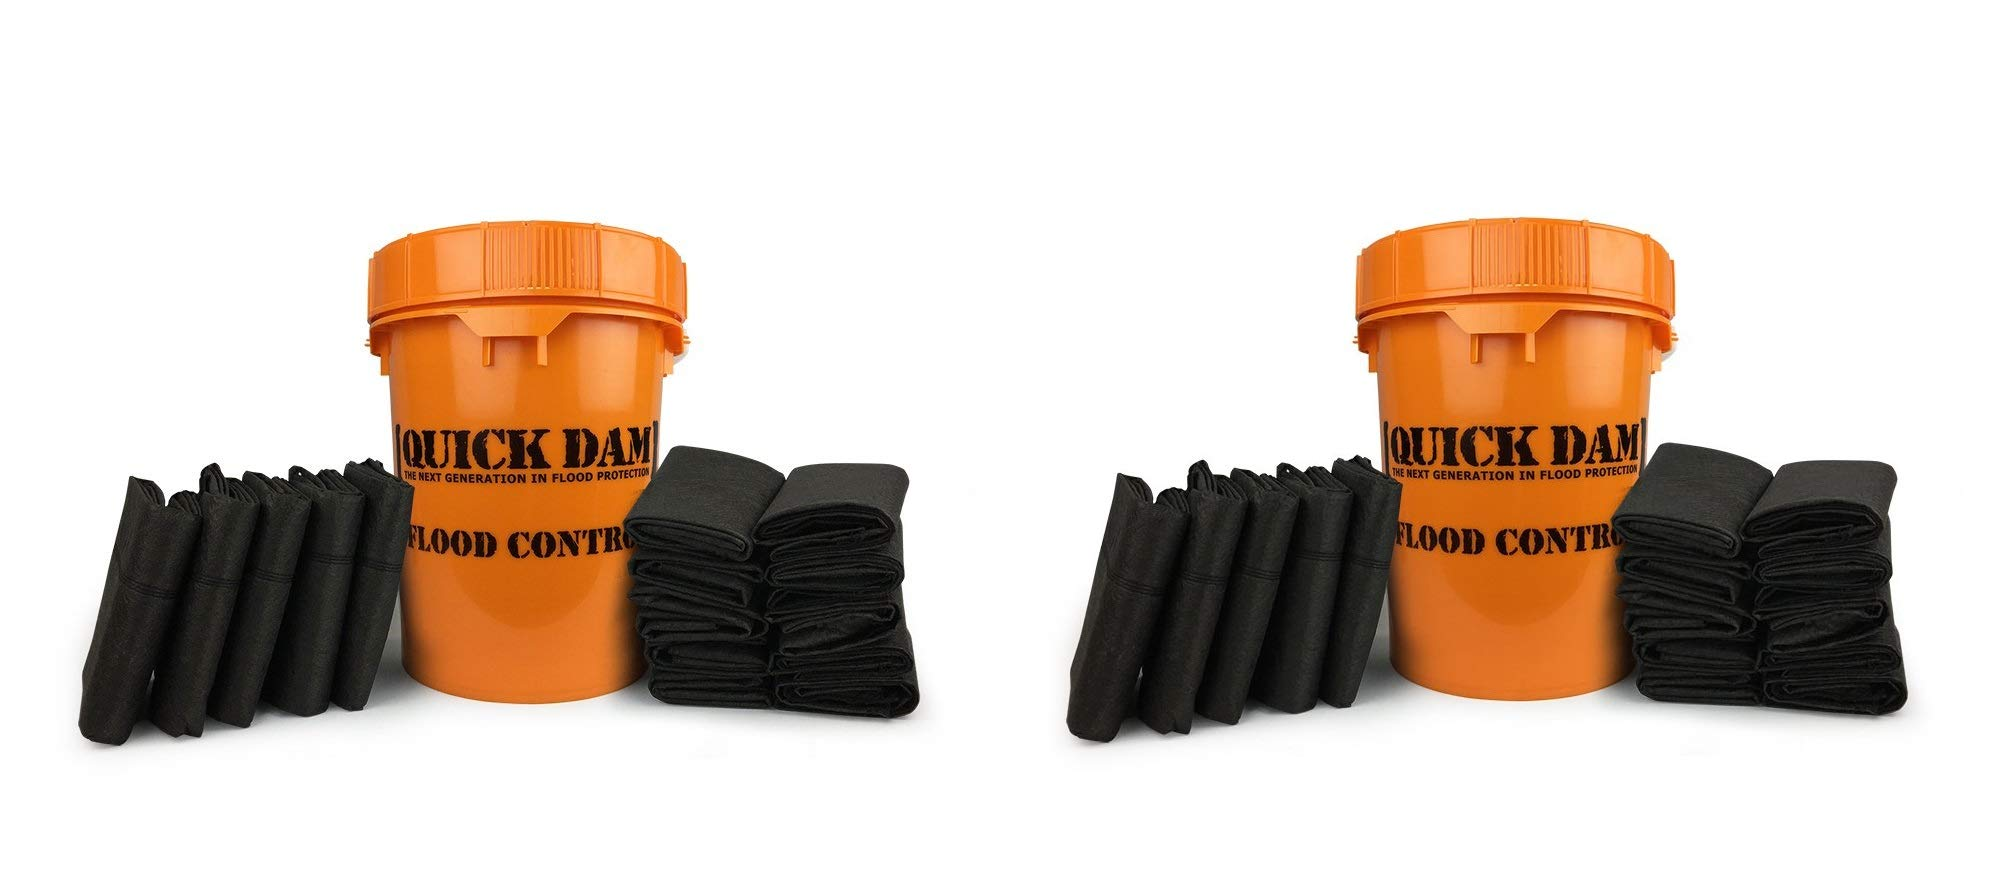 Quick Dam Grab & Go Flood Kit Includes 5-5ft Flood Barriers & 10-2ft Flood Bags in Bucket (Pack of 2)